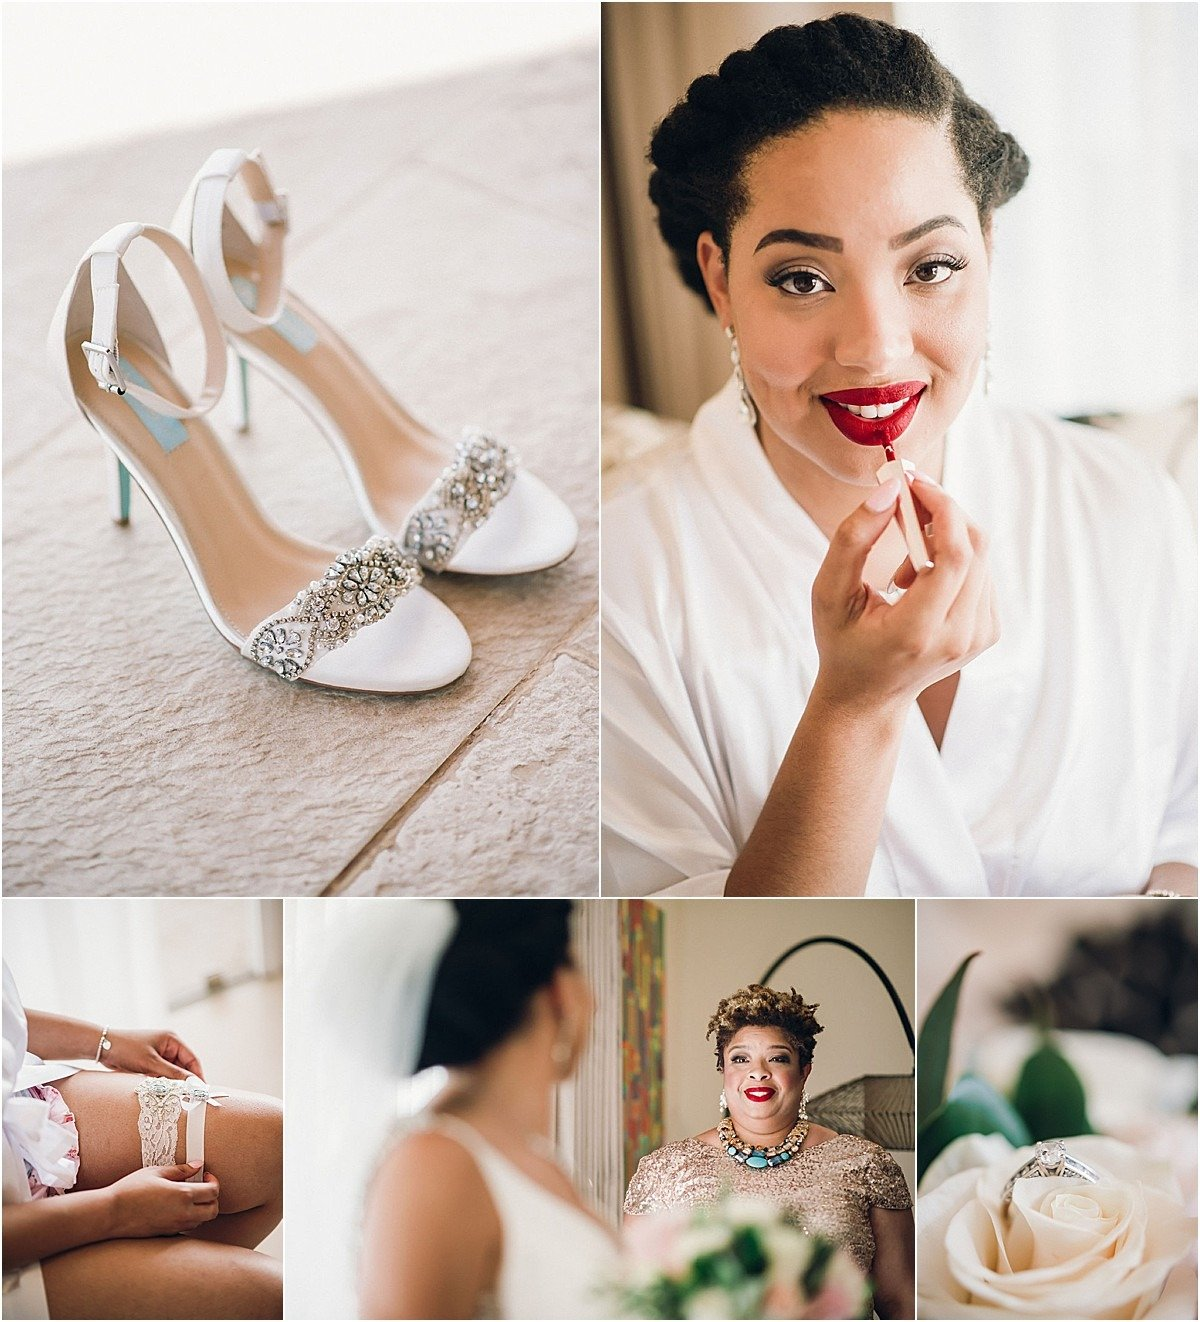 brides shoes and red lipstick